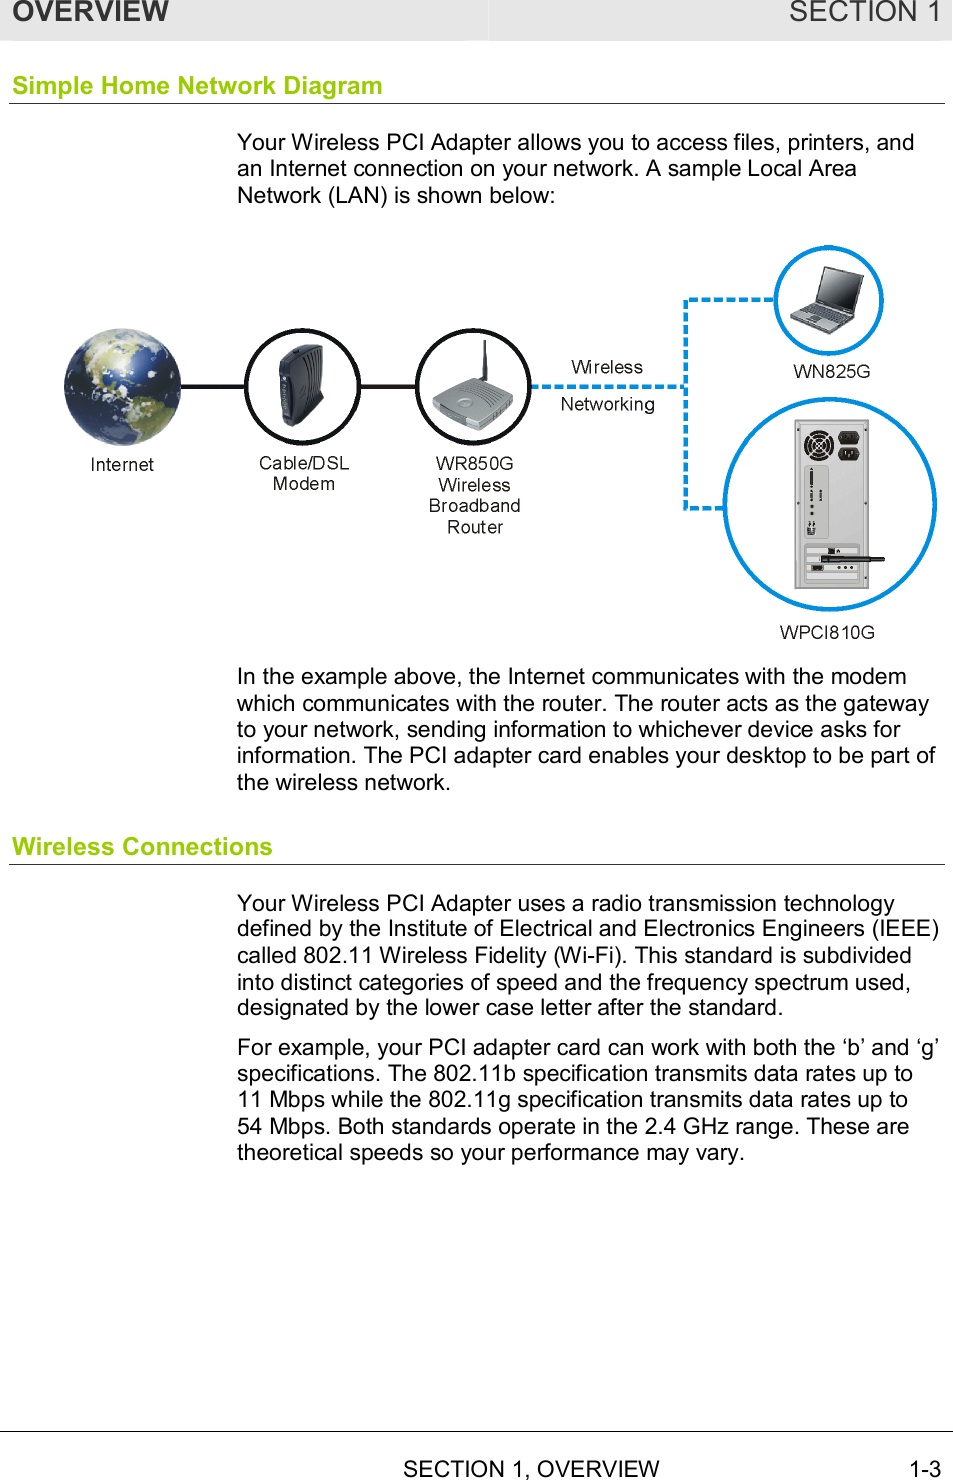 Arris Group Wpc1810g Wireless Pci Adapter User Manual Wpci810g Netowrk Diagram Overview Section 1 3 Simple Home Network Your